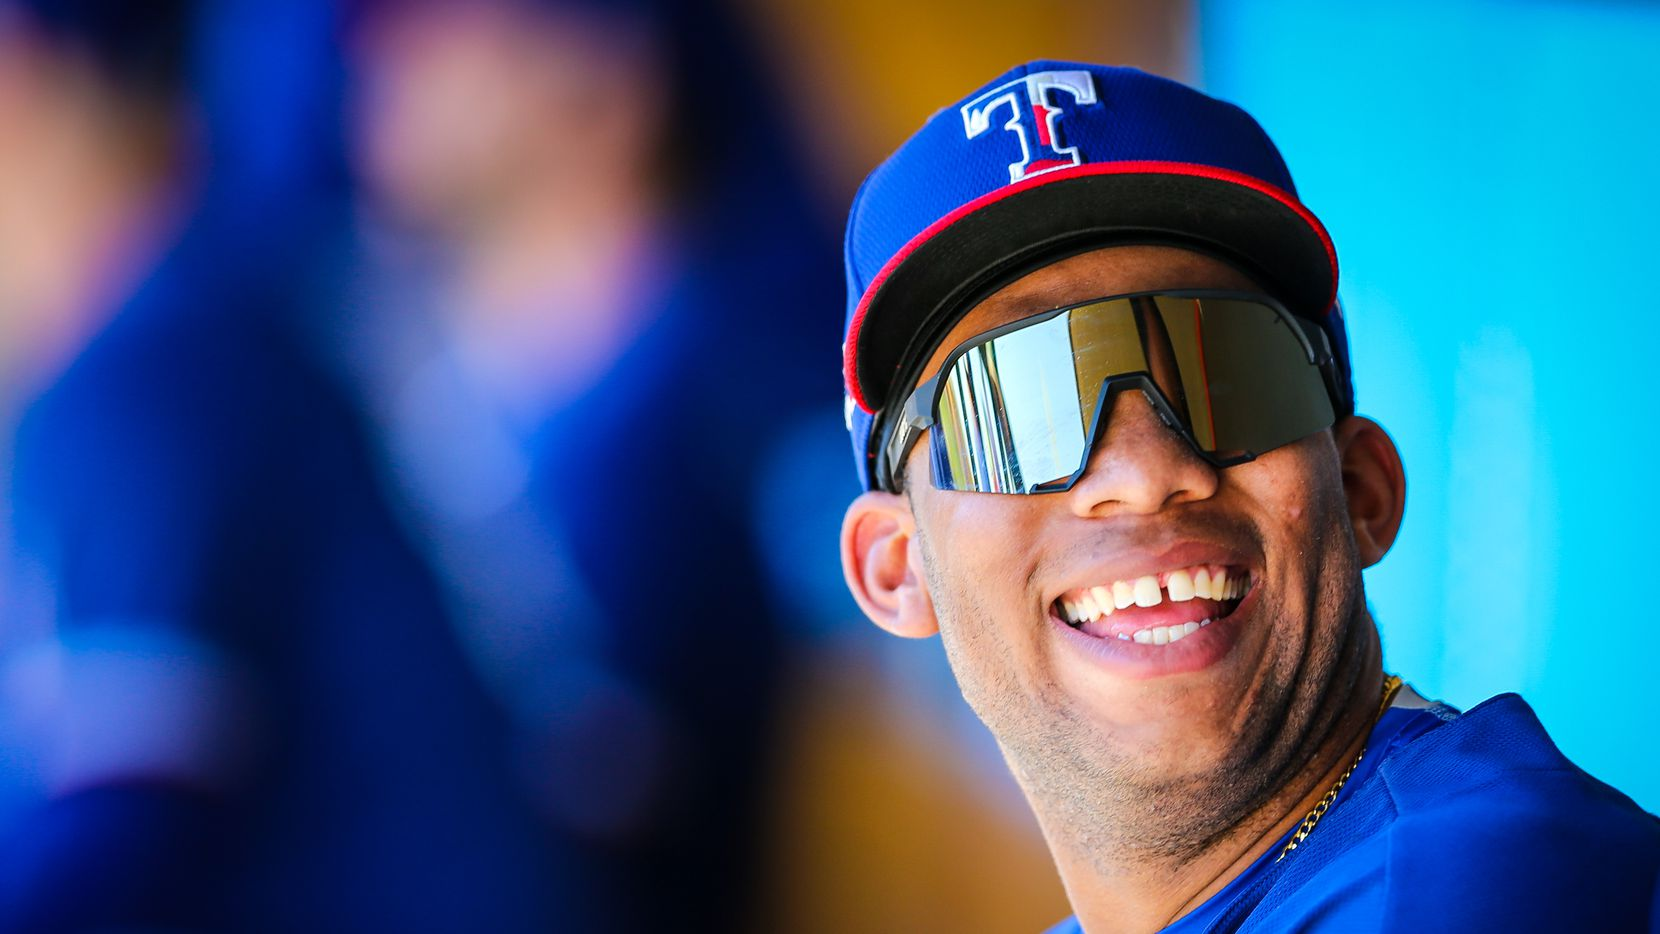 Texas Rangers minor leaguer Curtis Terry, pictured during spring training 2020 in Surprise, Arizona.